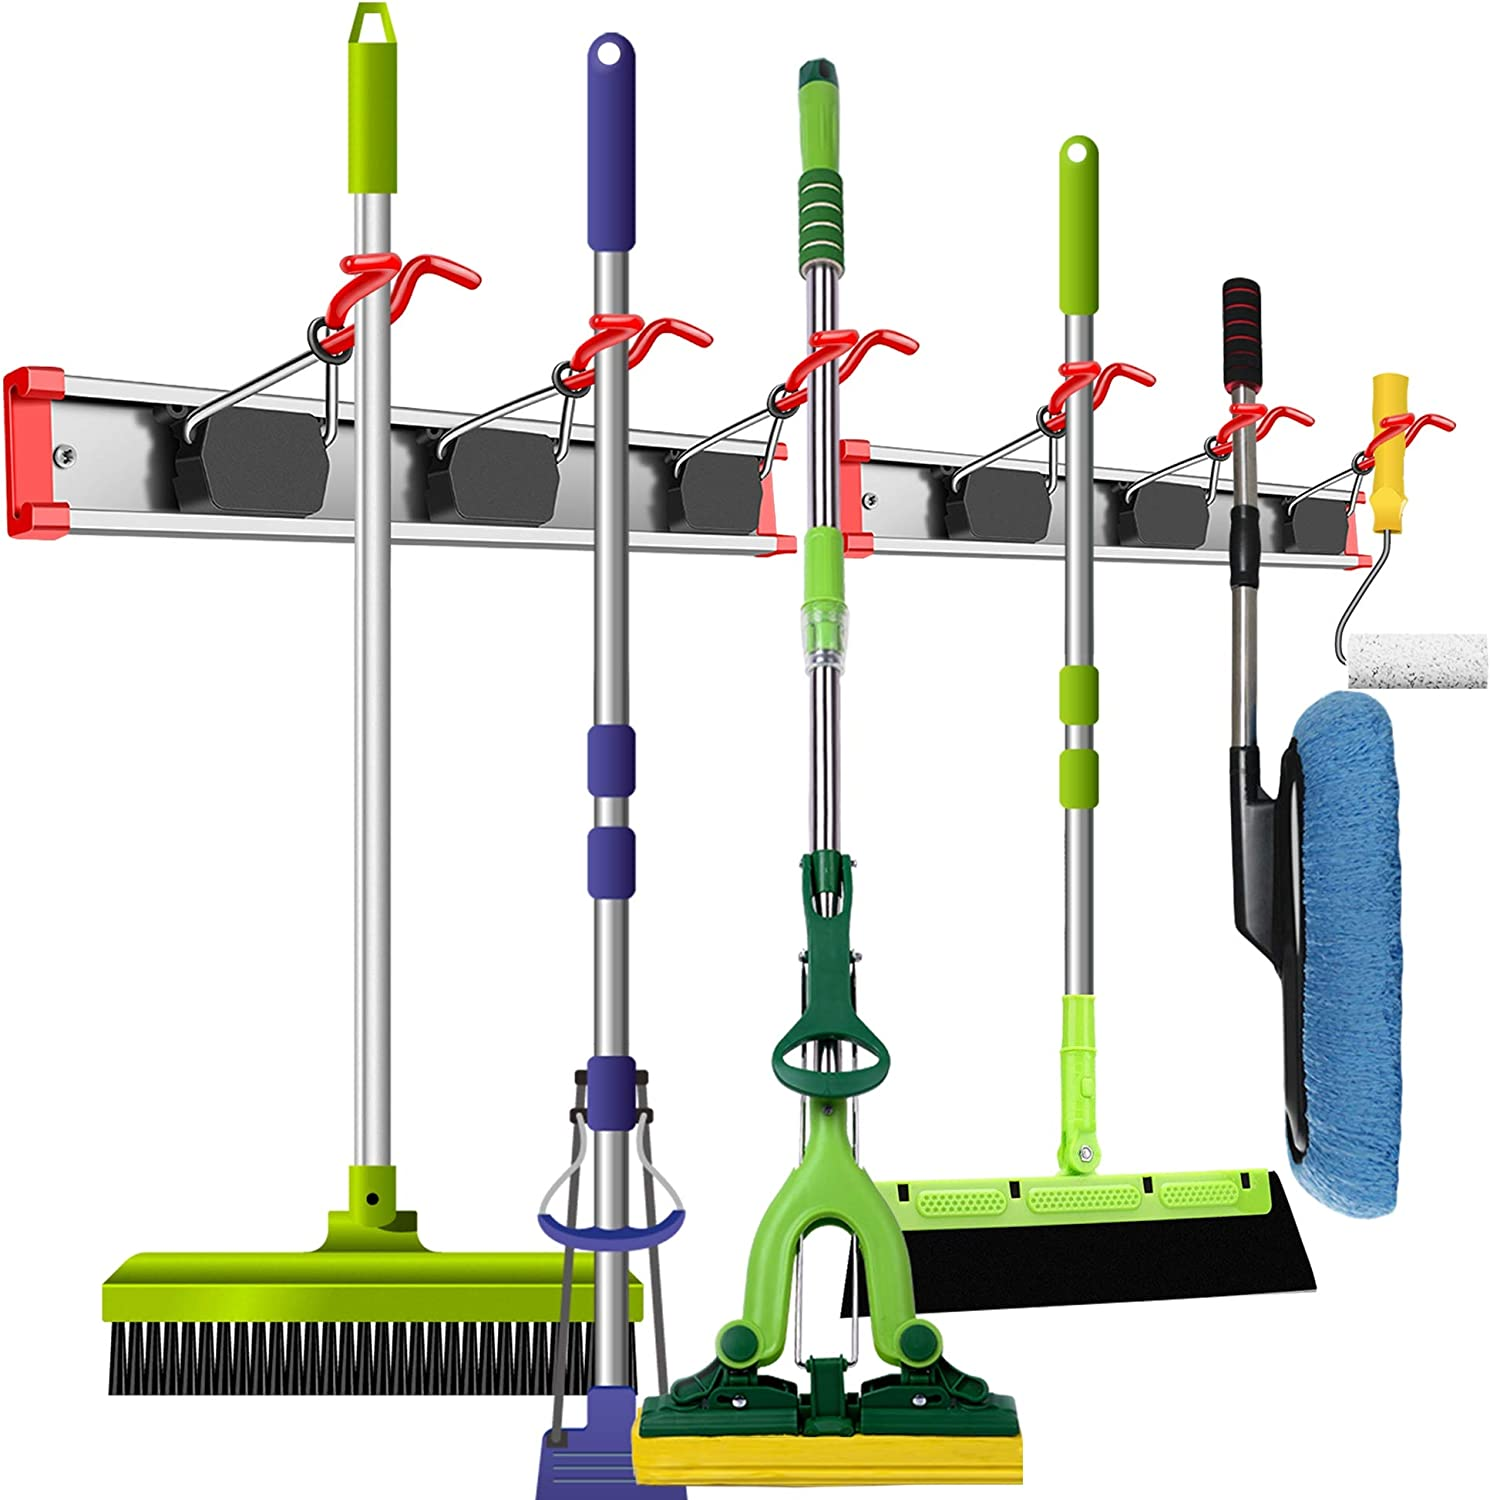 WALMANN Aluminium Alloy Broom and Mop Holder, Space Saving Wall Mounted Organizers and Storage for Home, Broom Holder and Wall Tool Organizer for Garage Storage System, Pack of 2 (Total 6 Holders)